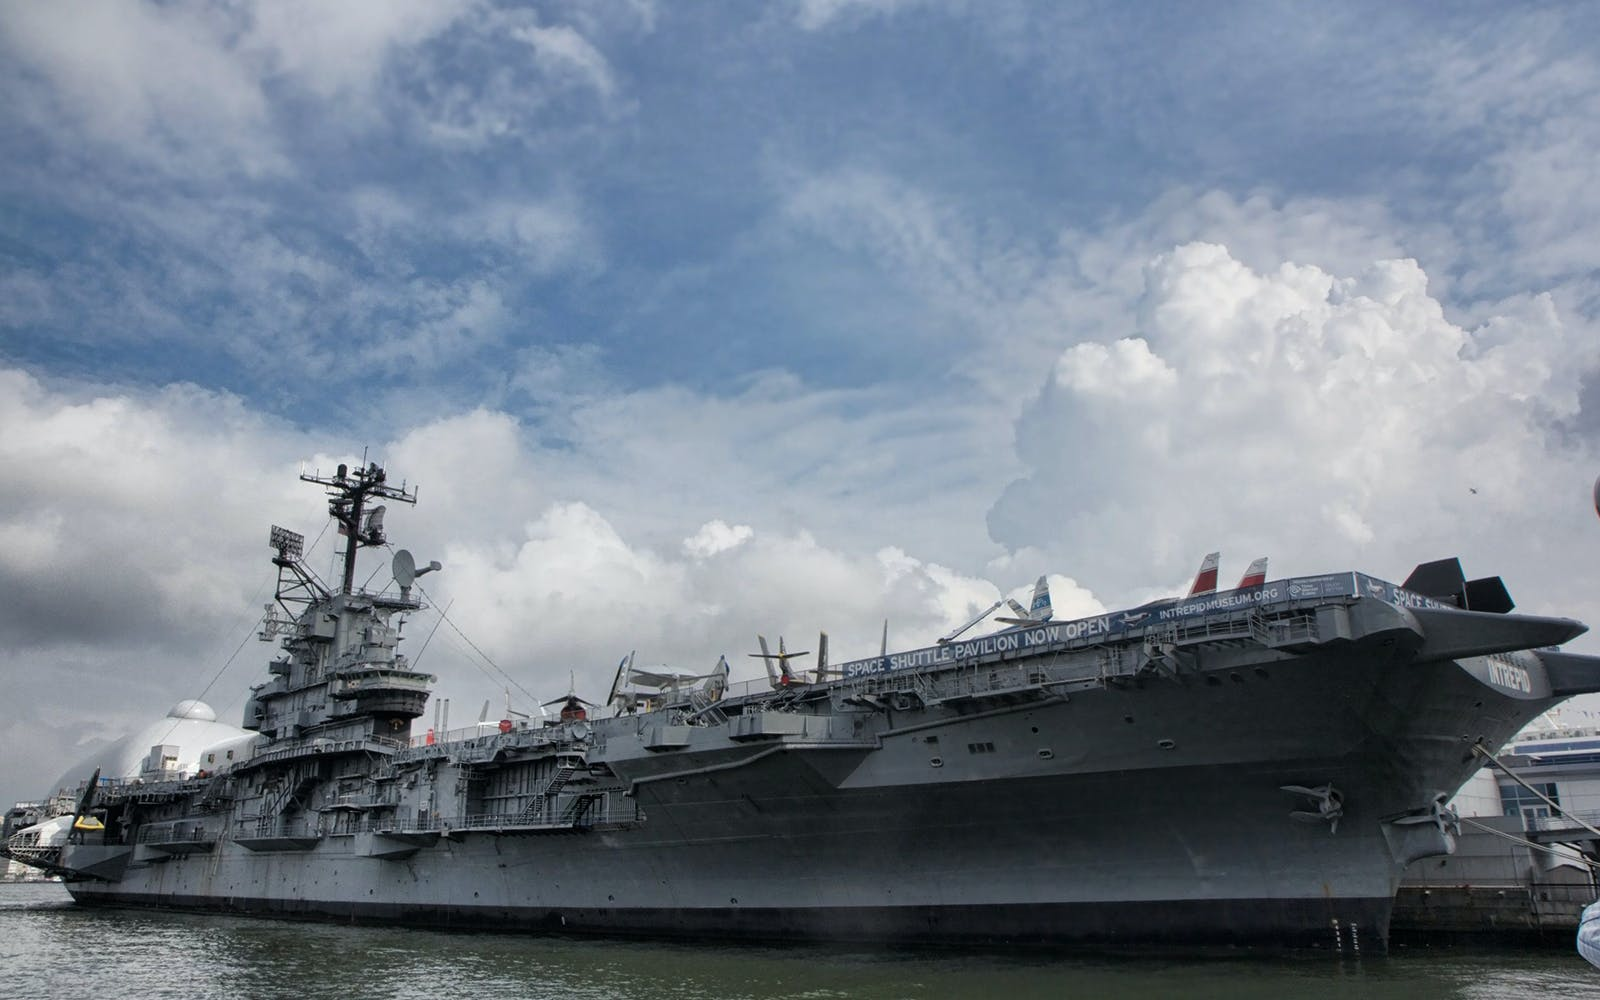 intrepid museum - general admission & space exhibit tickets-7